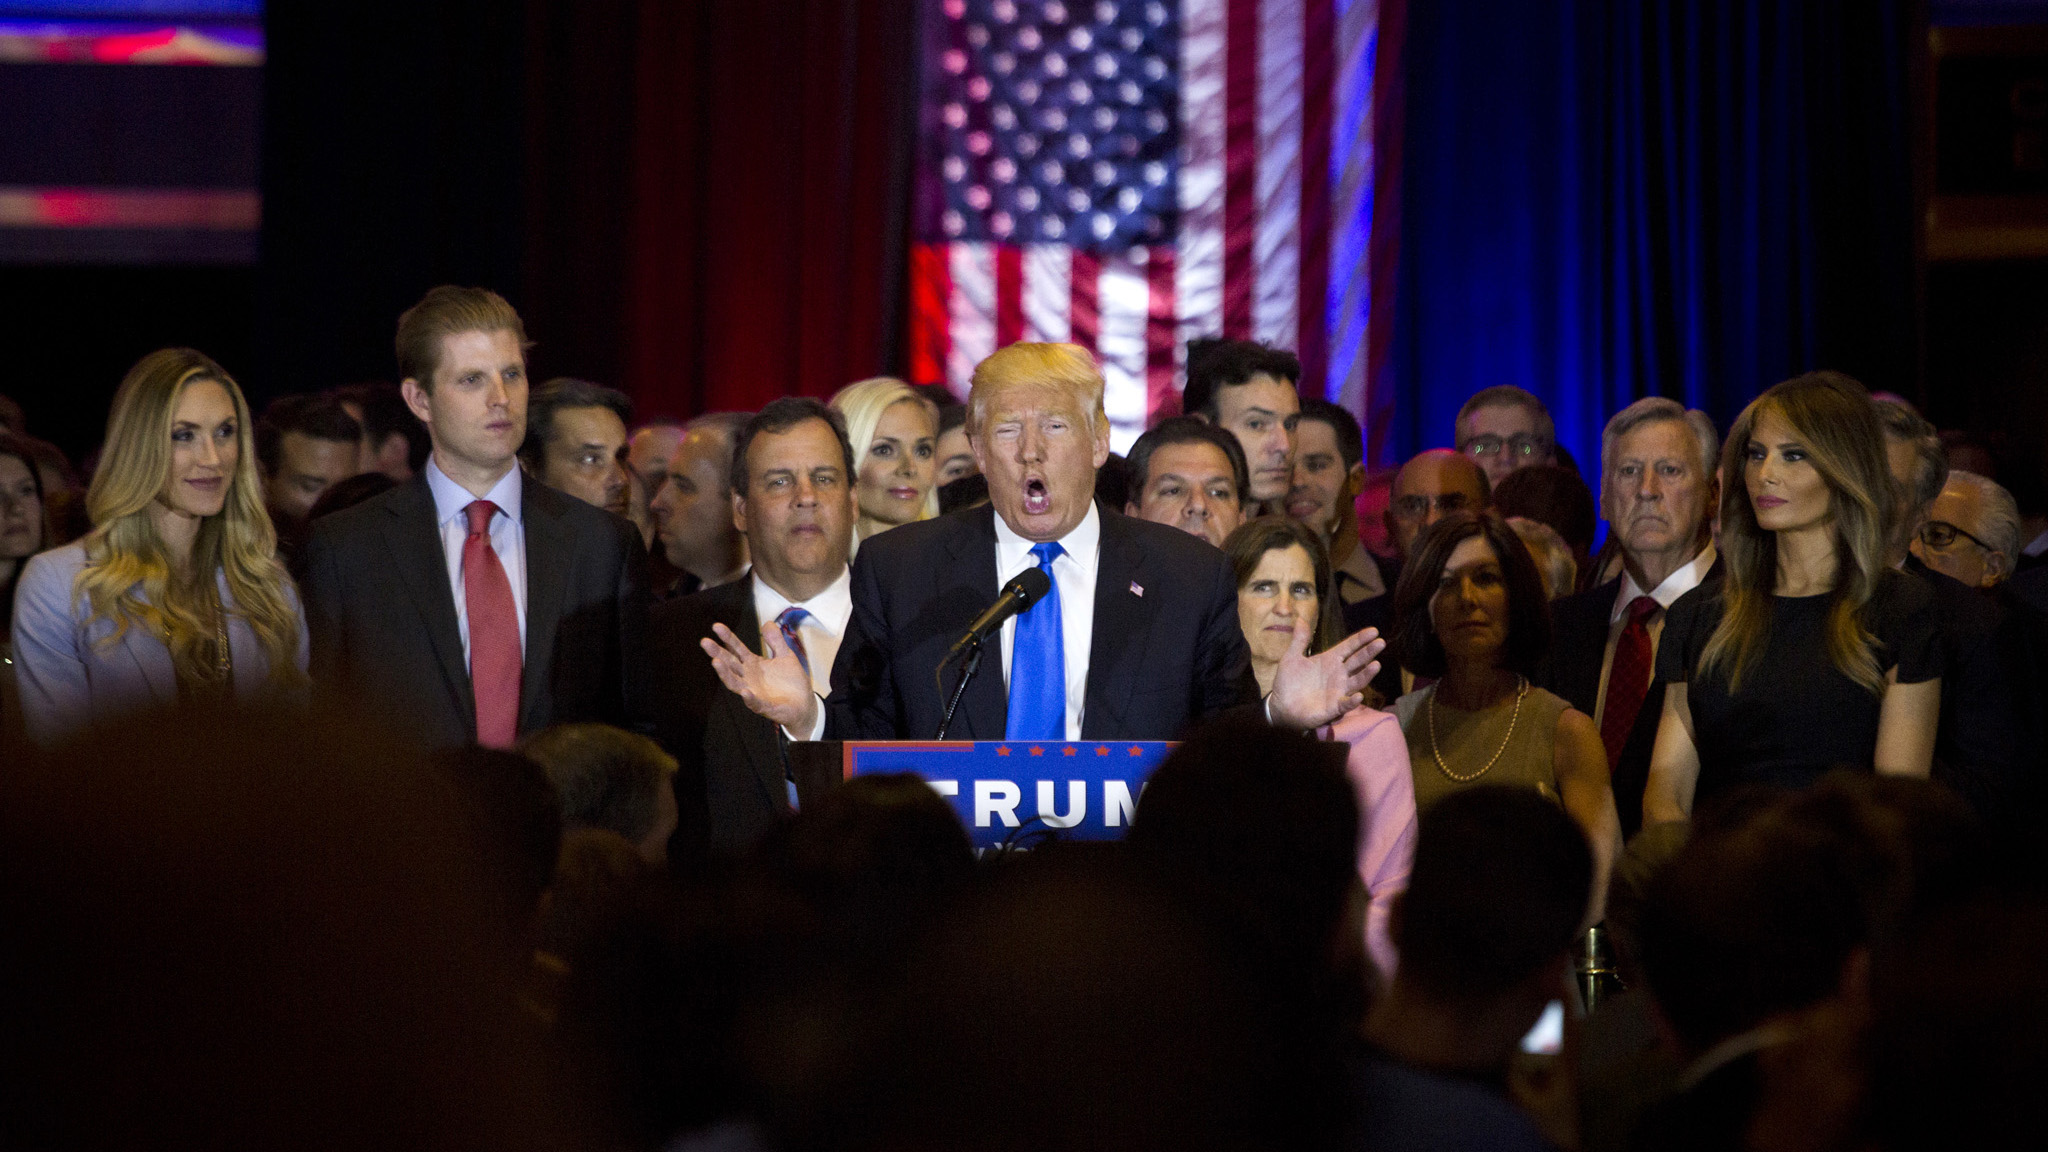 Donald Trump, president and chief executive of Trump Organization Inc. and 2016 Republican presidential candidate, center, speaks during a campaign event in New York